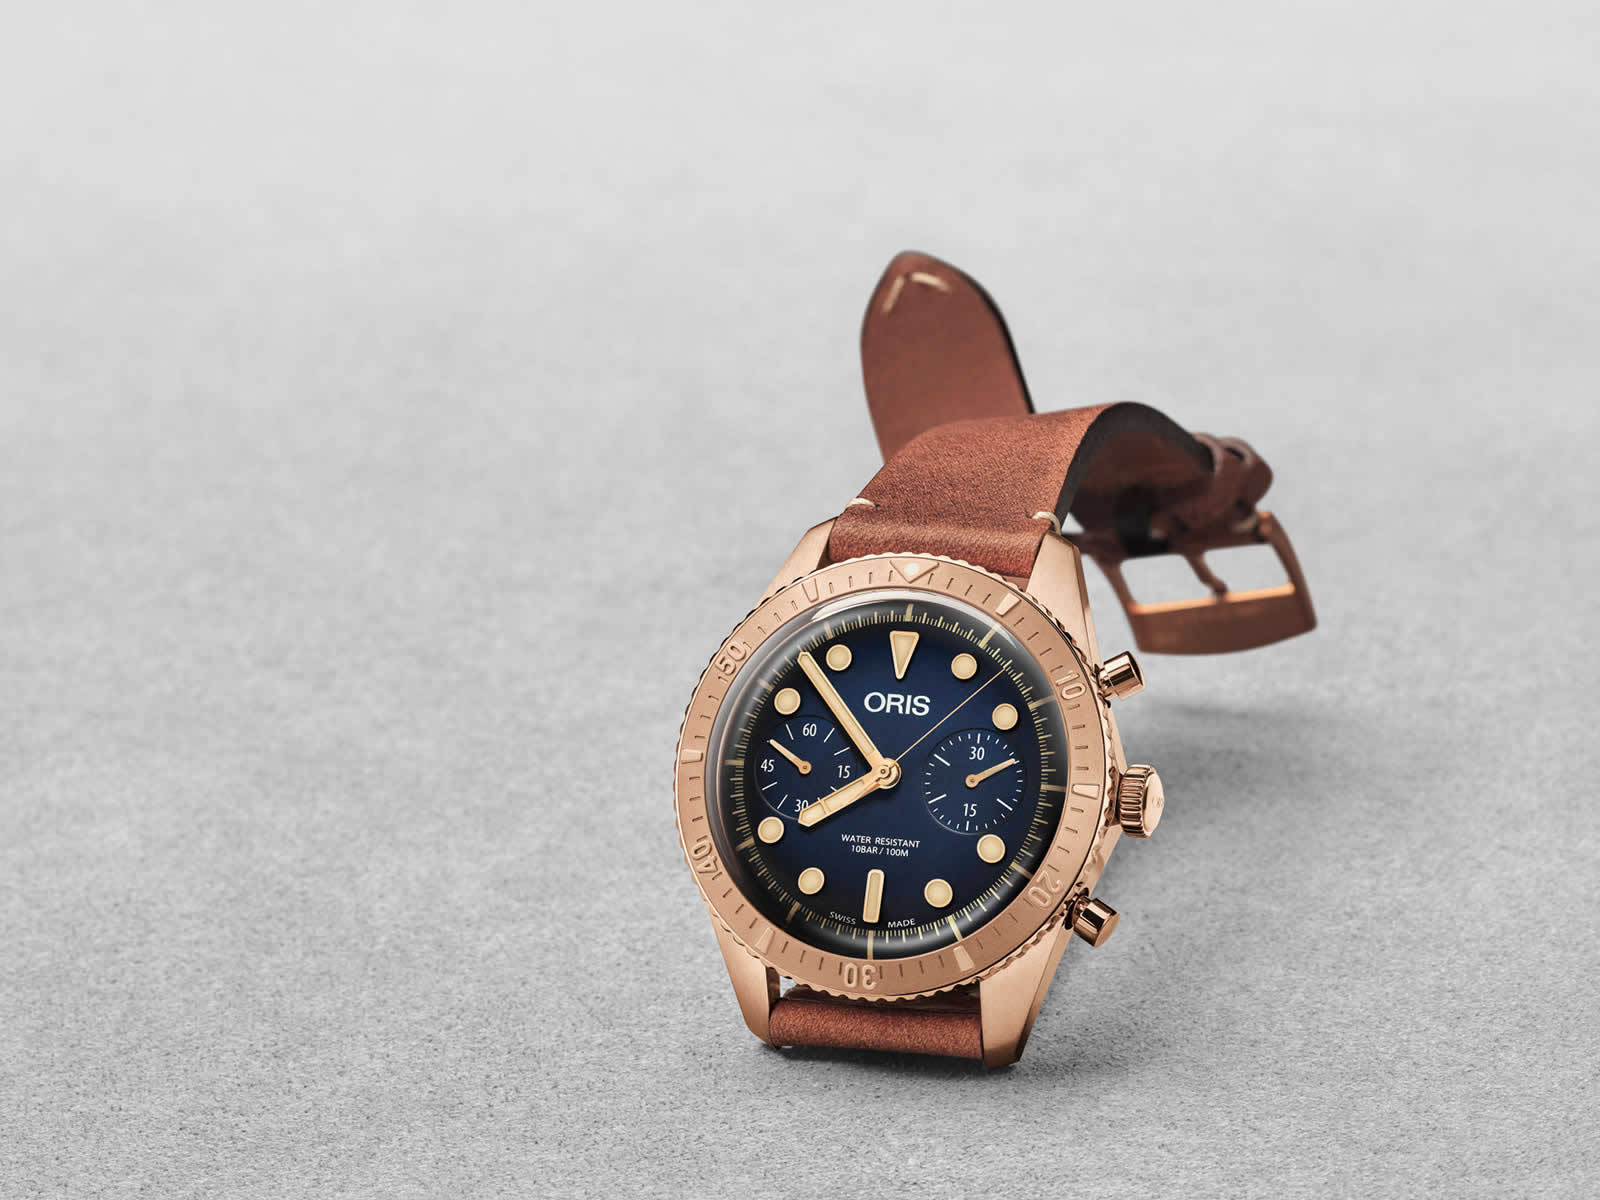 01-771-7744-3185-oris-carl-brashear-chronograph-limited-edition-1.jpg